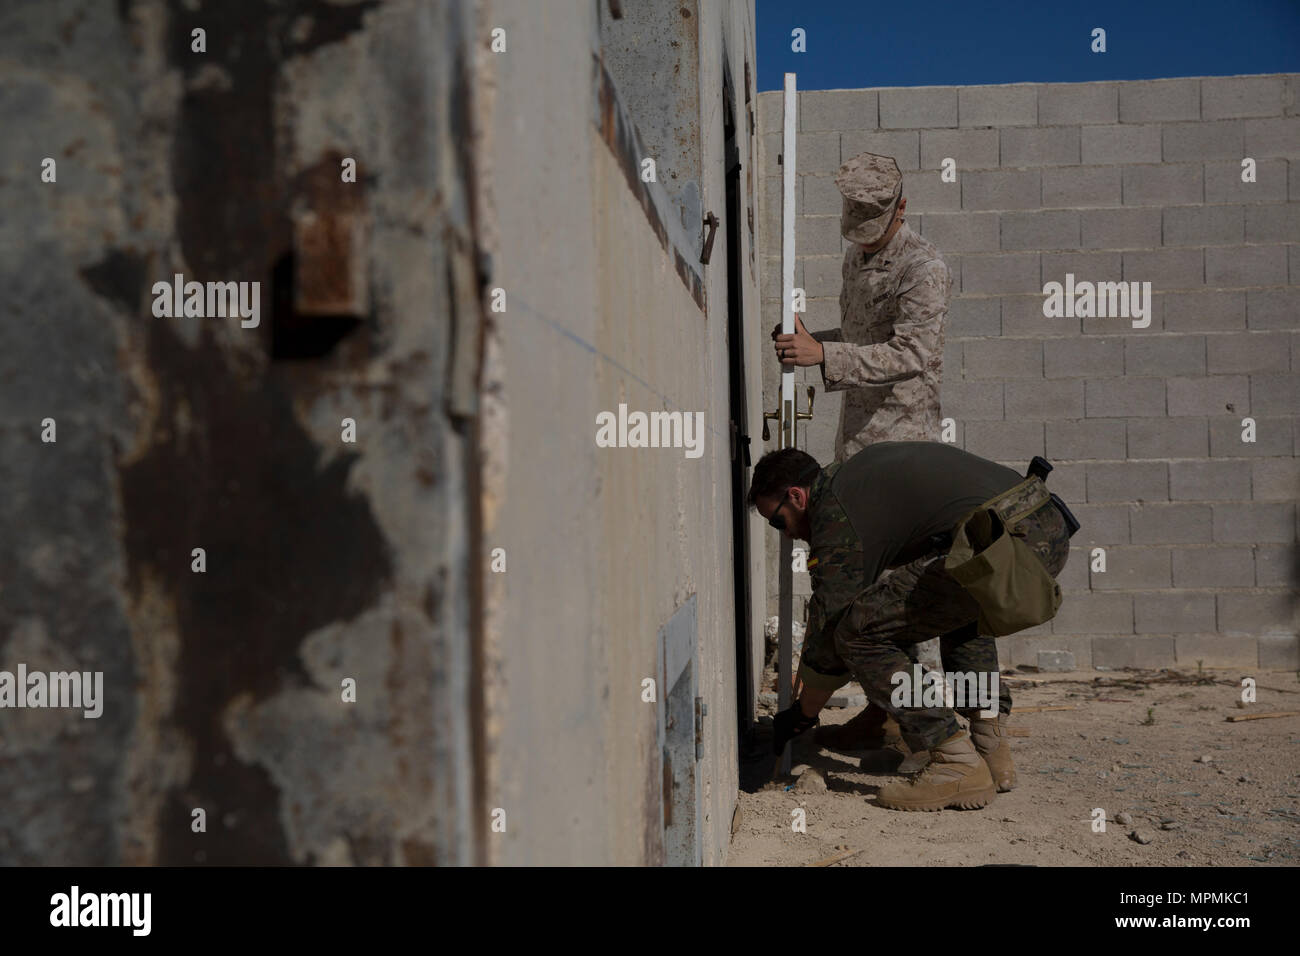 A U.S. Marine assigned to Special Purpose Marine Air Ground Task Force-Crisis Response- & Breaching Door Stock Photos \u0026 Breaching Door Stock Images - Alamy